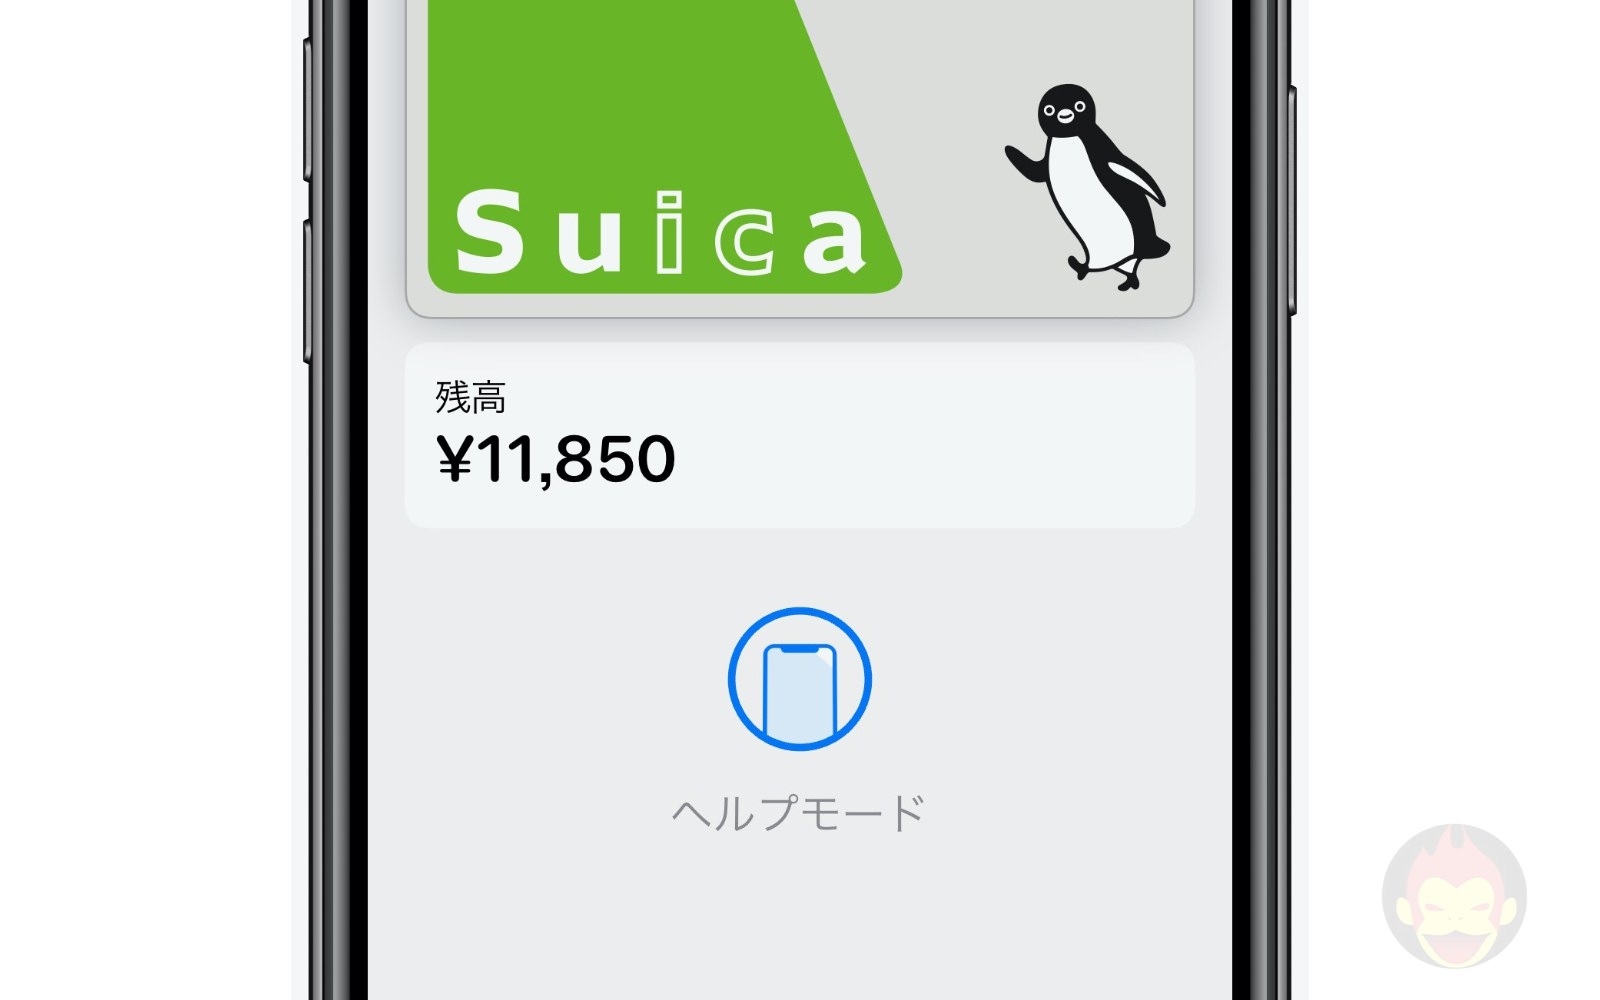 Suica-Help-Mode-on-iphone-apple-pay.jpg